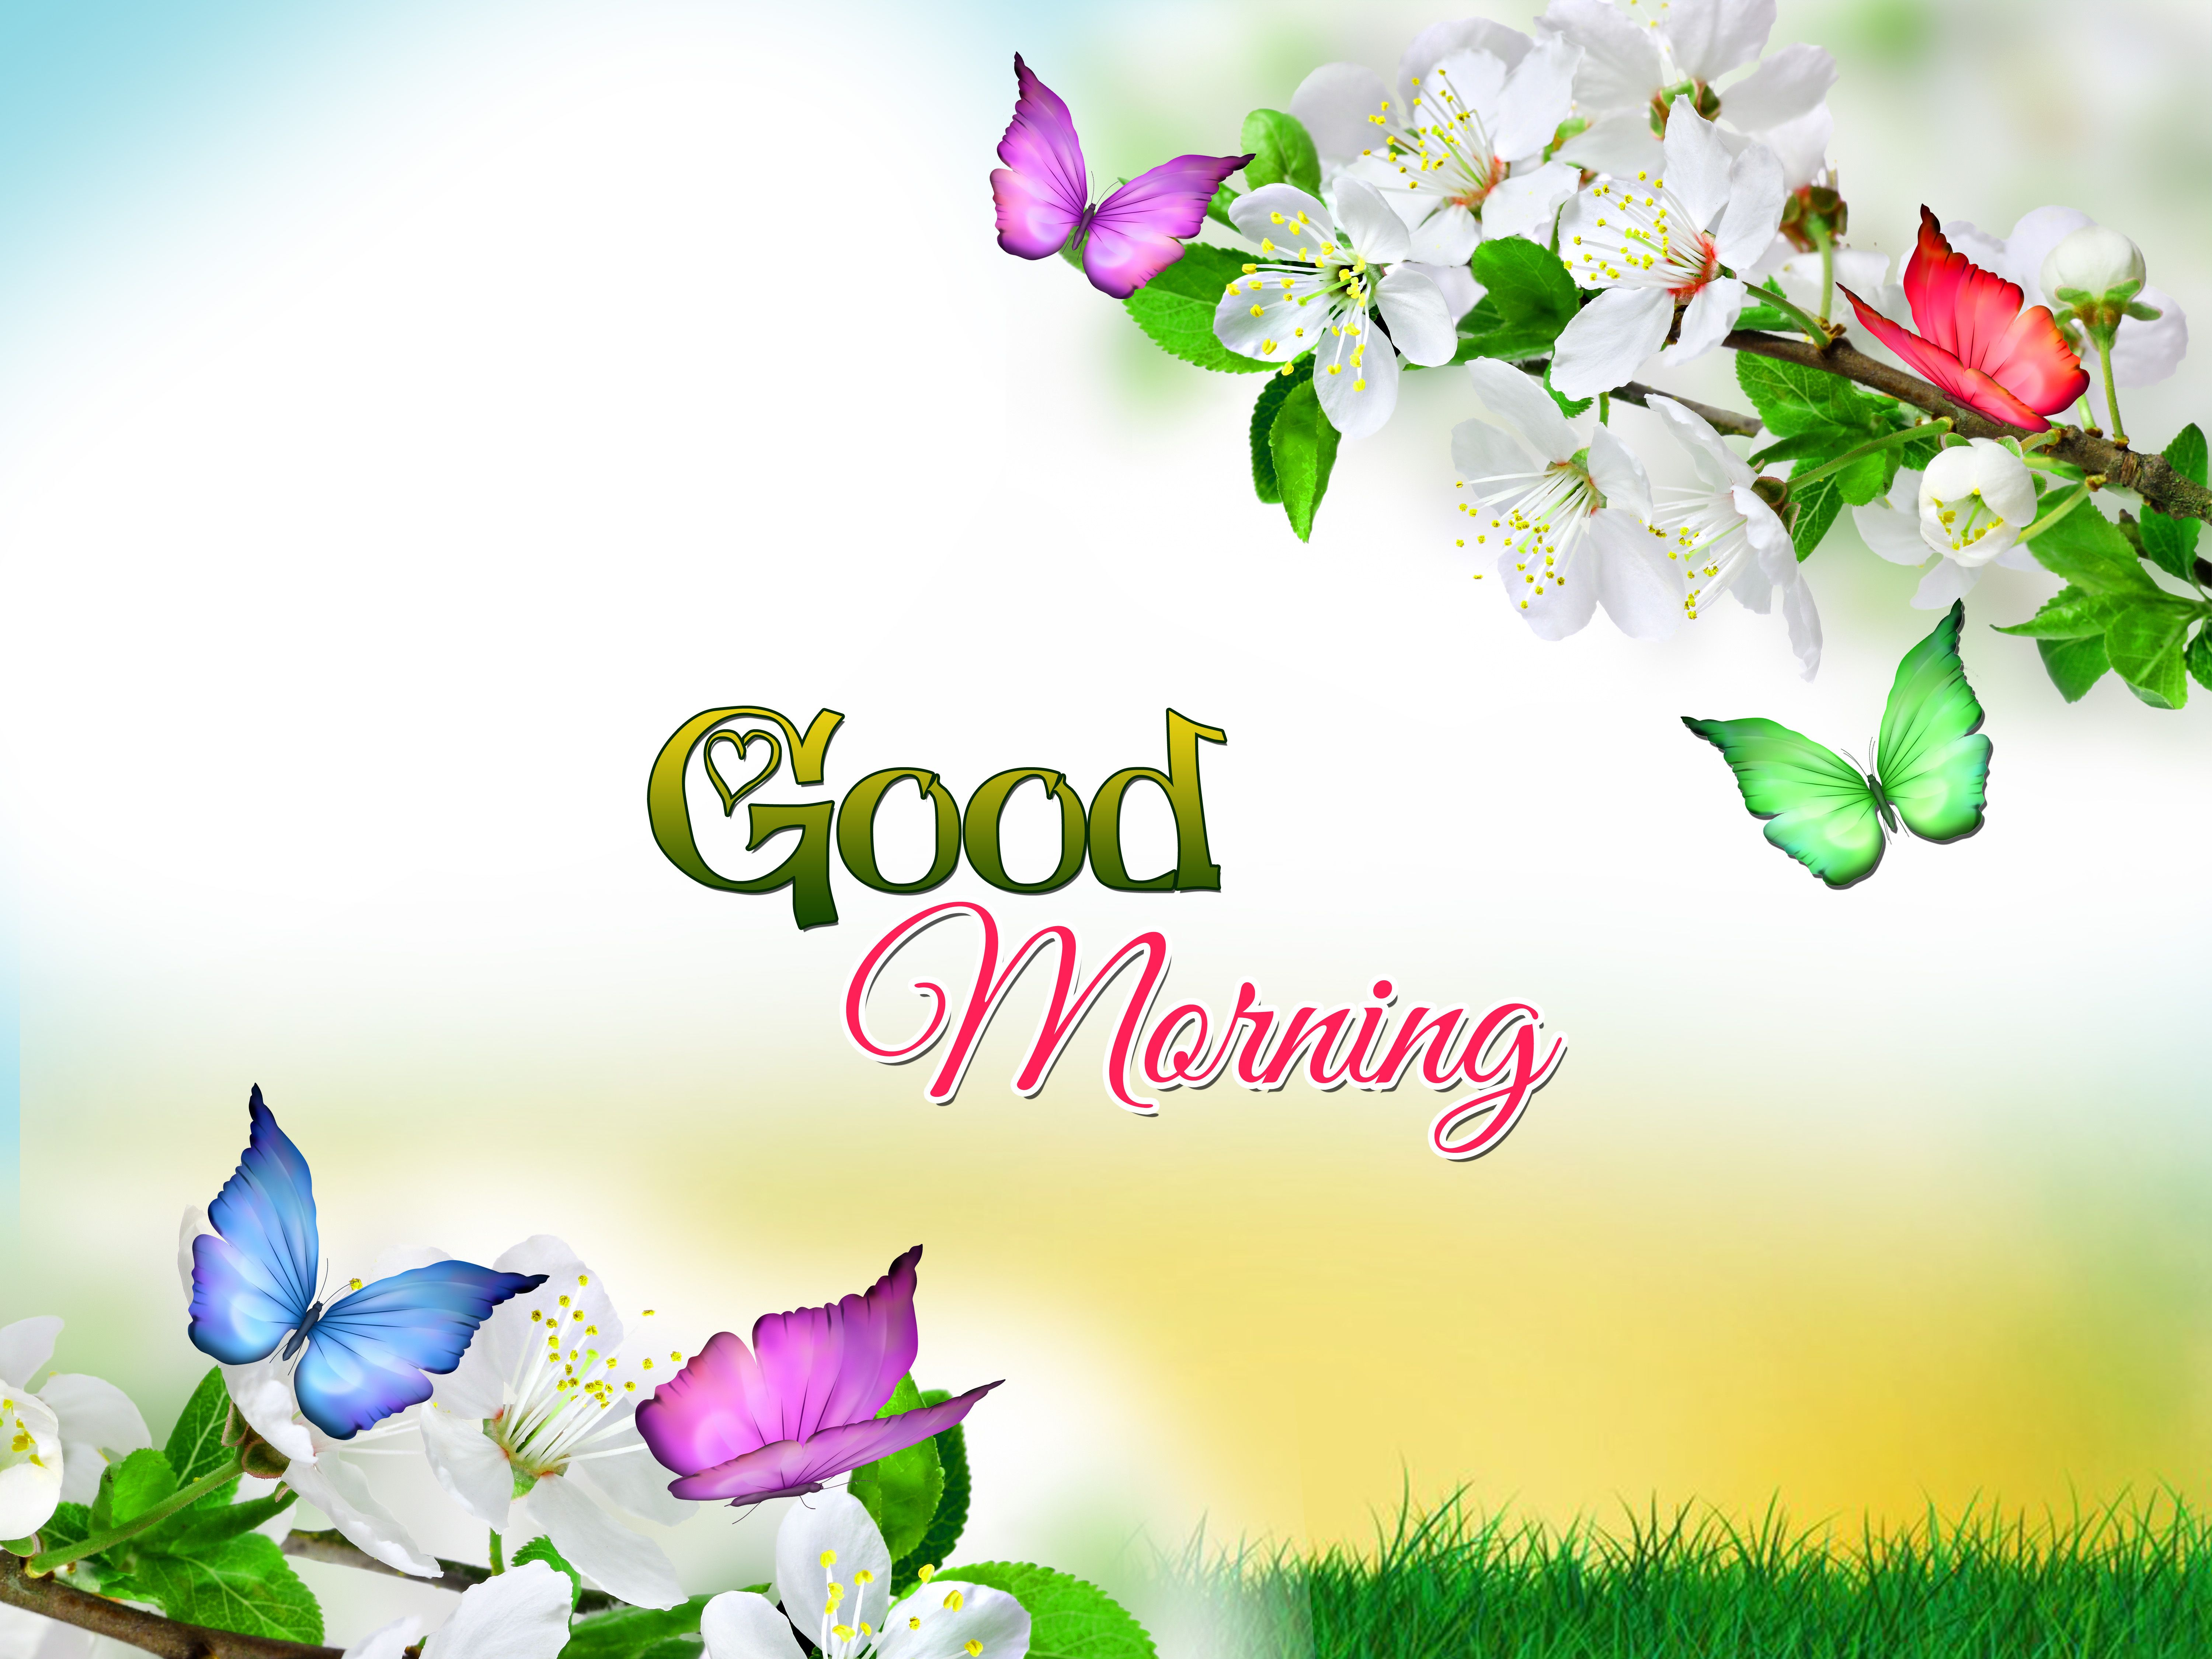 Full Hd Good Morning Wallpapers For Facebook Free Download